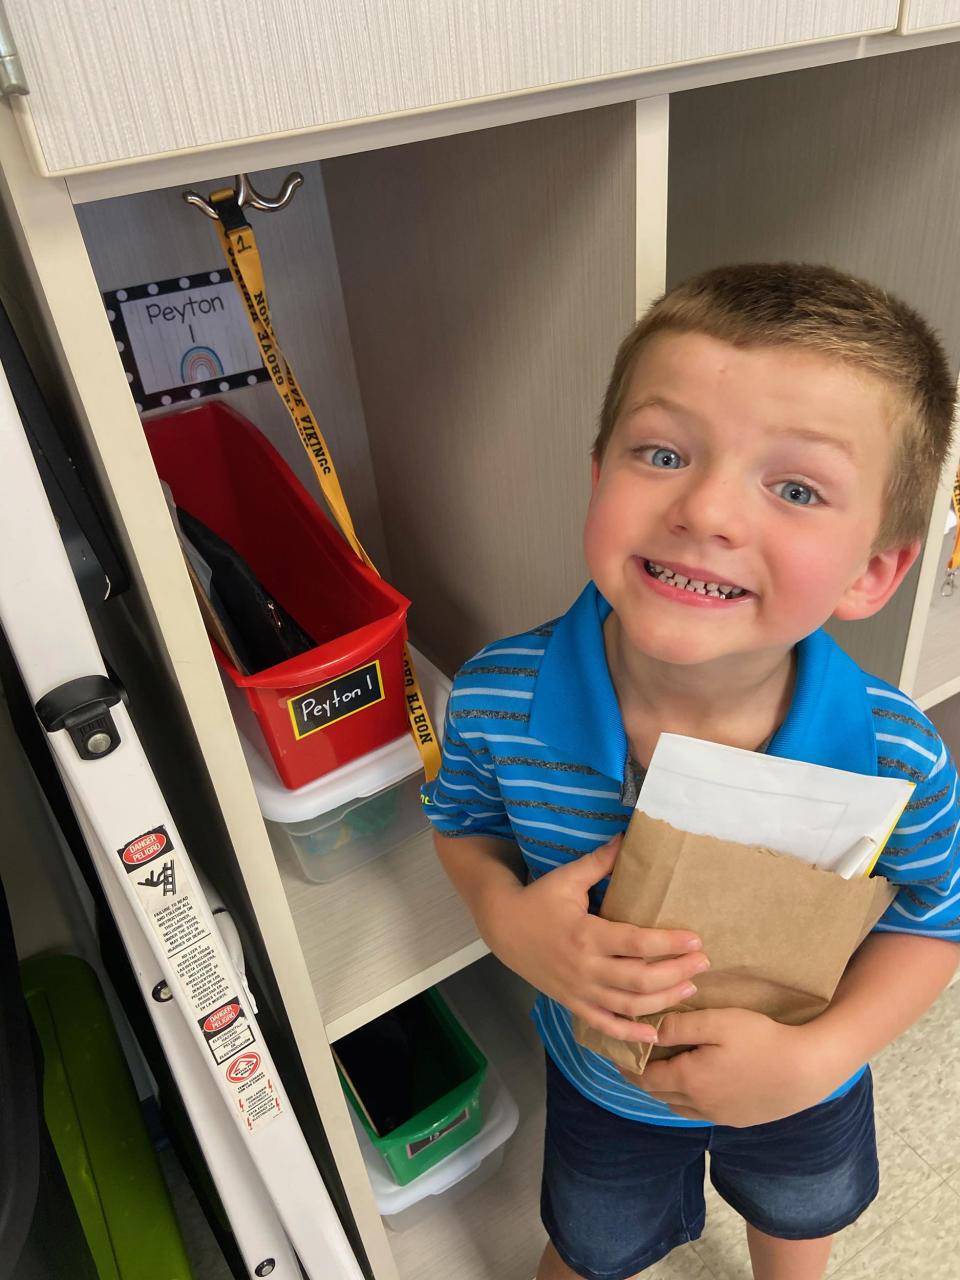 Peyton, now 6, accidentally swallowed magnets when he strung them together like a snake and pretended he was eating spaghetti. His mom, Jessica MacNair, wants to raise awareness about the dangers of tiny magnets. (Courtesy Jessica MacNair)